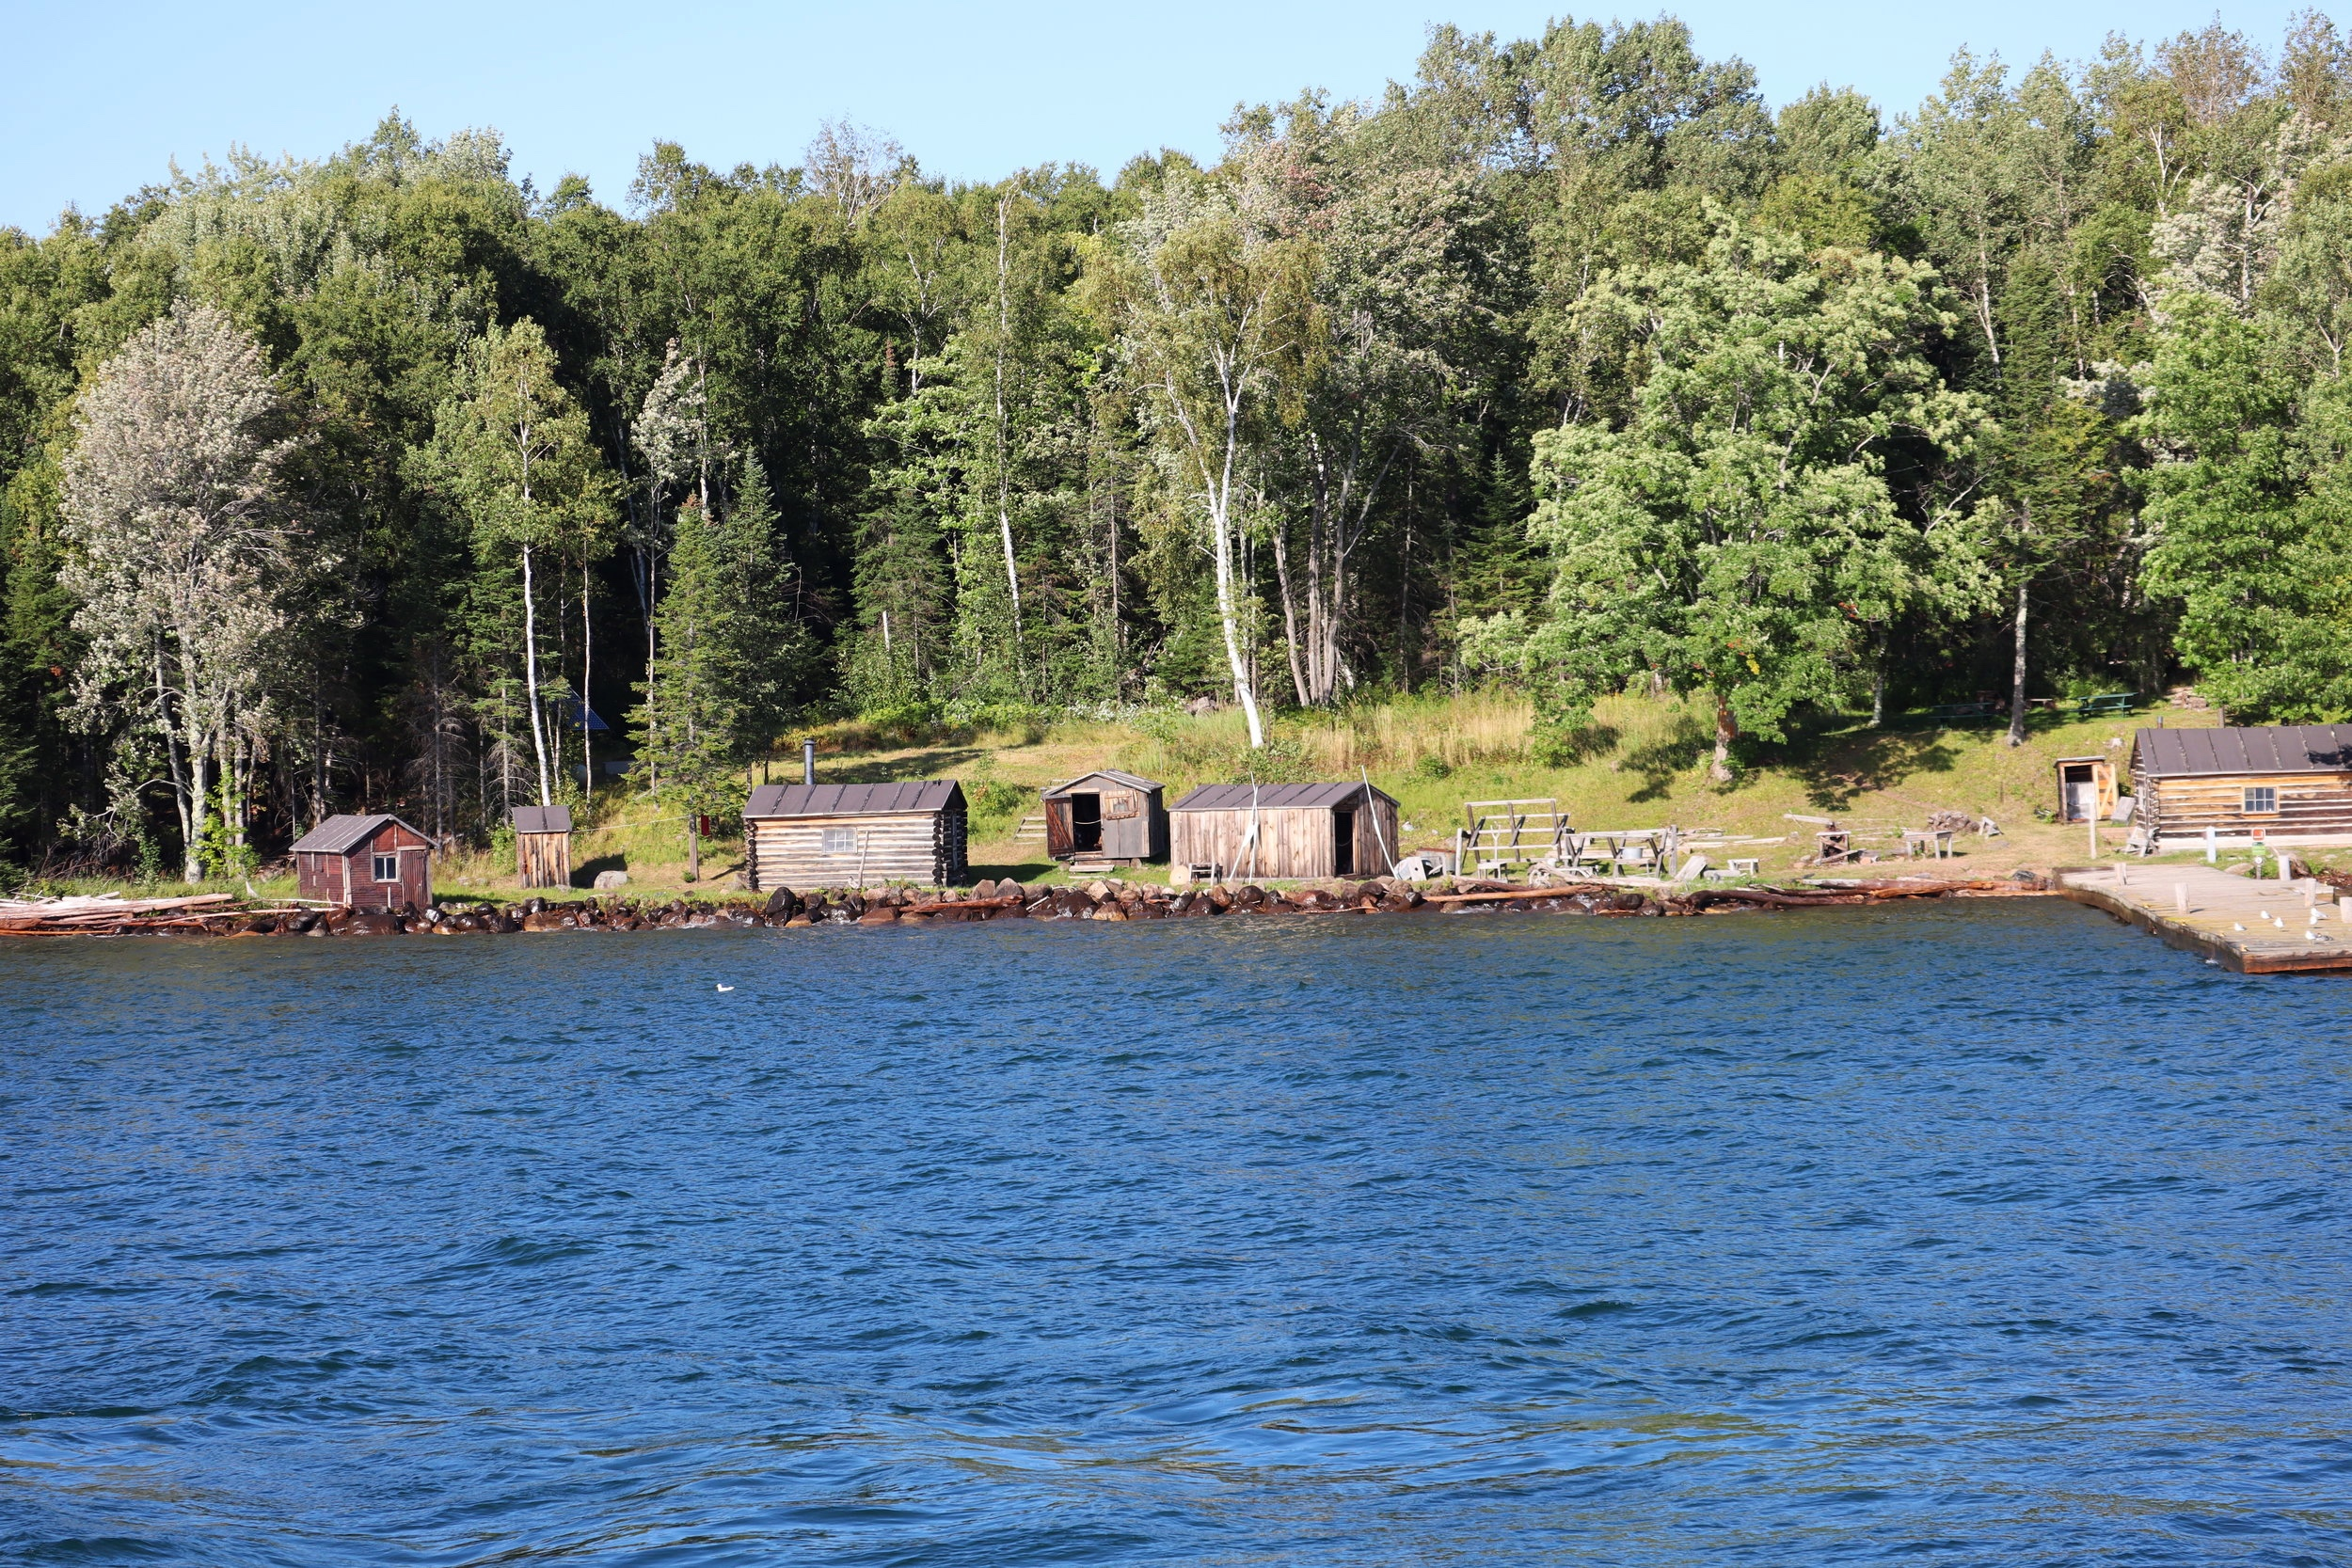 A fishing camp restored from the early 1900's.